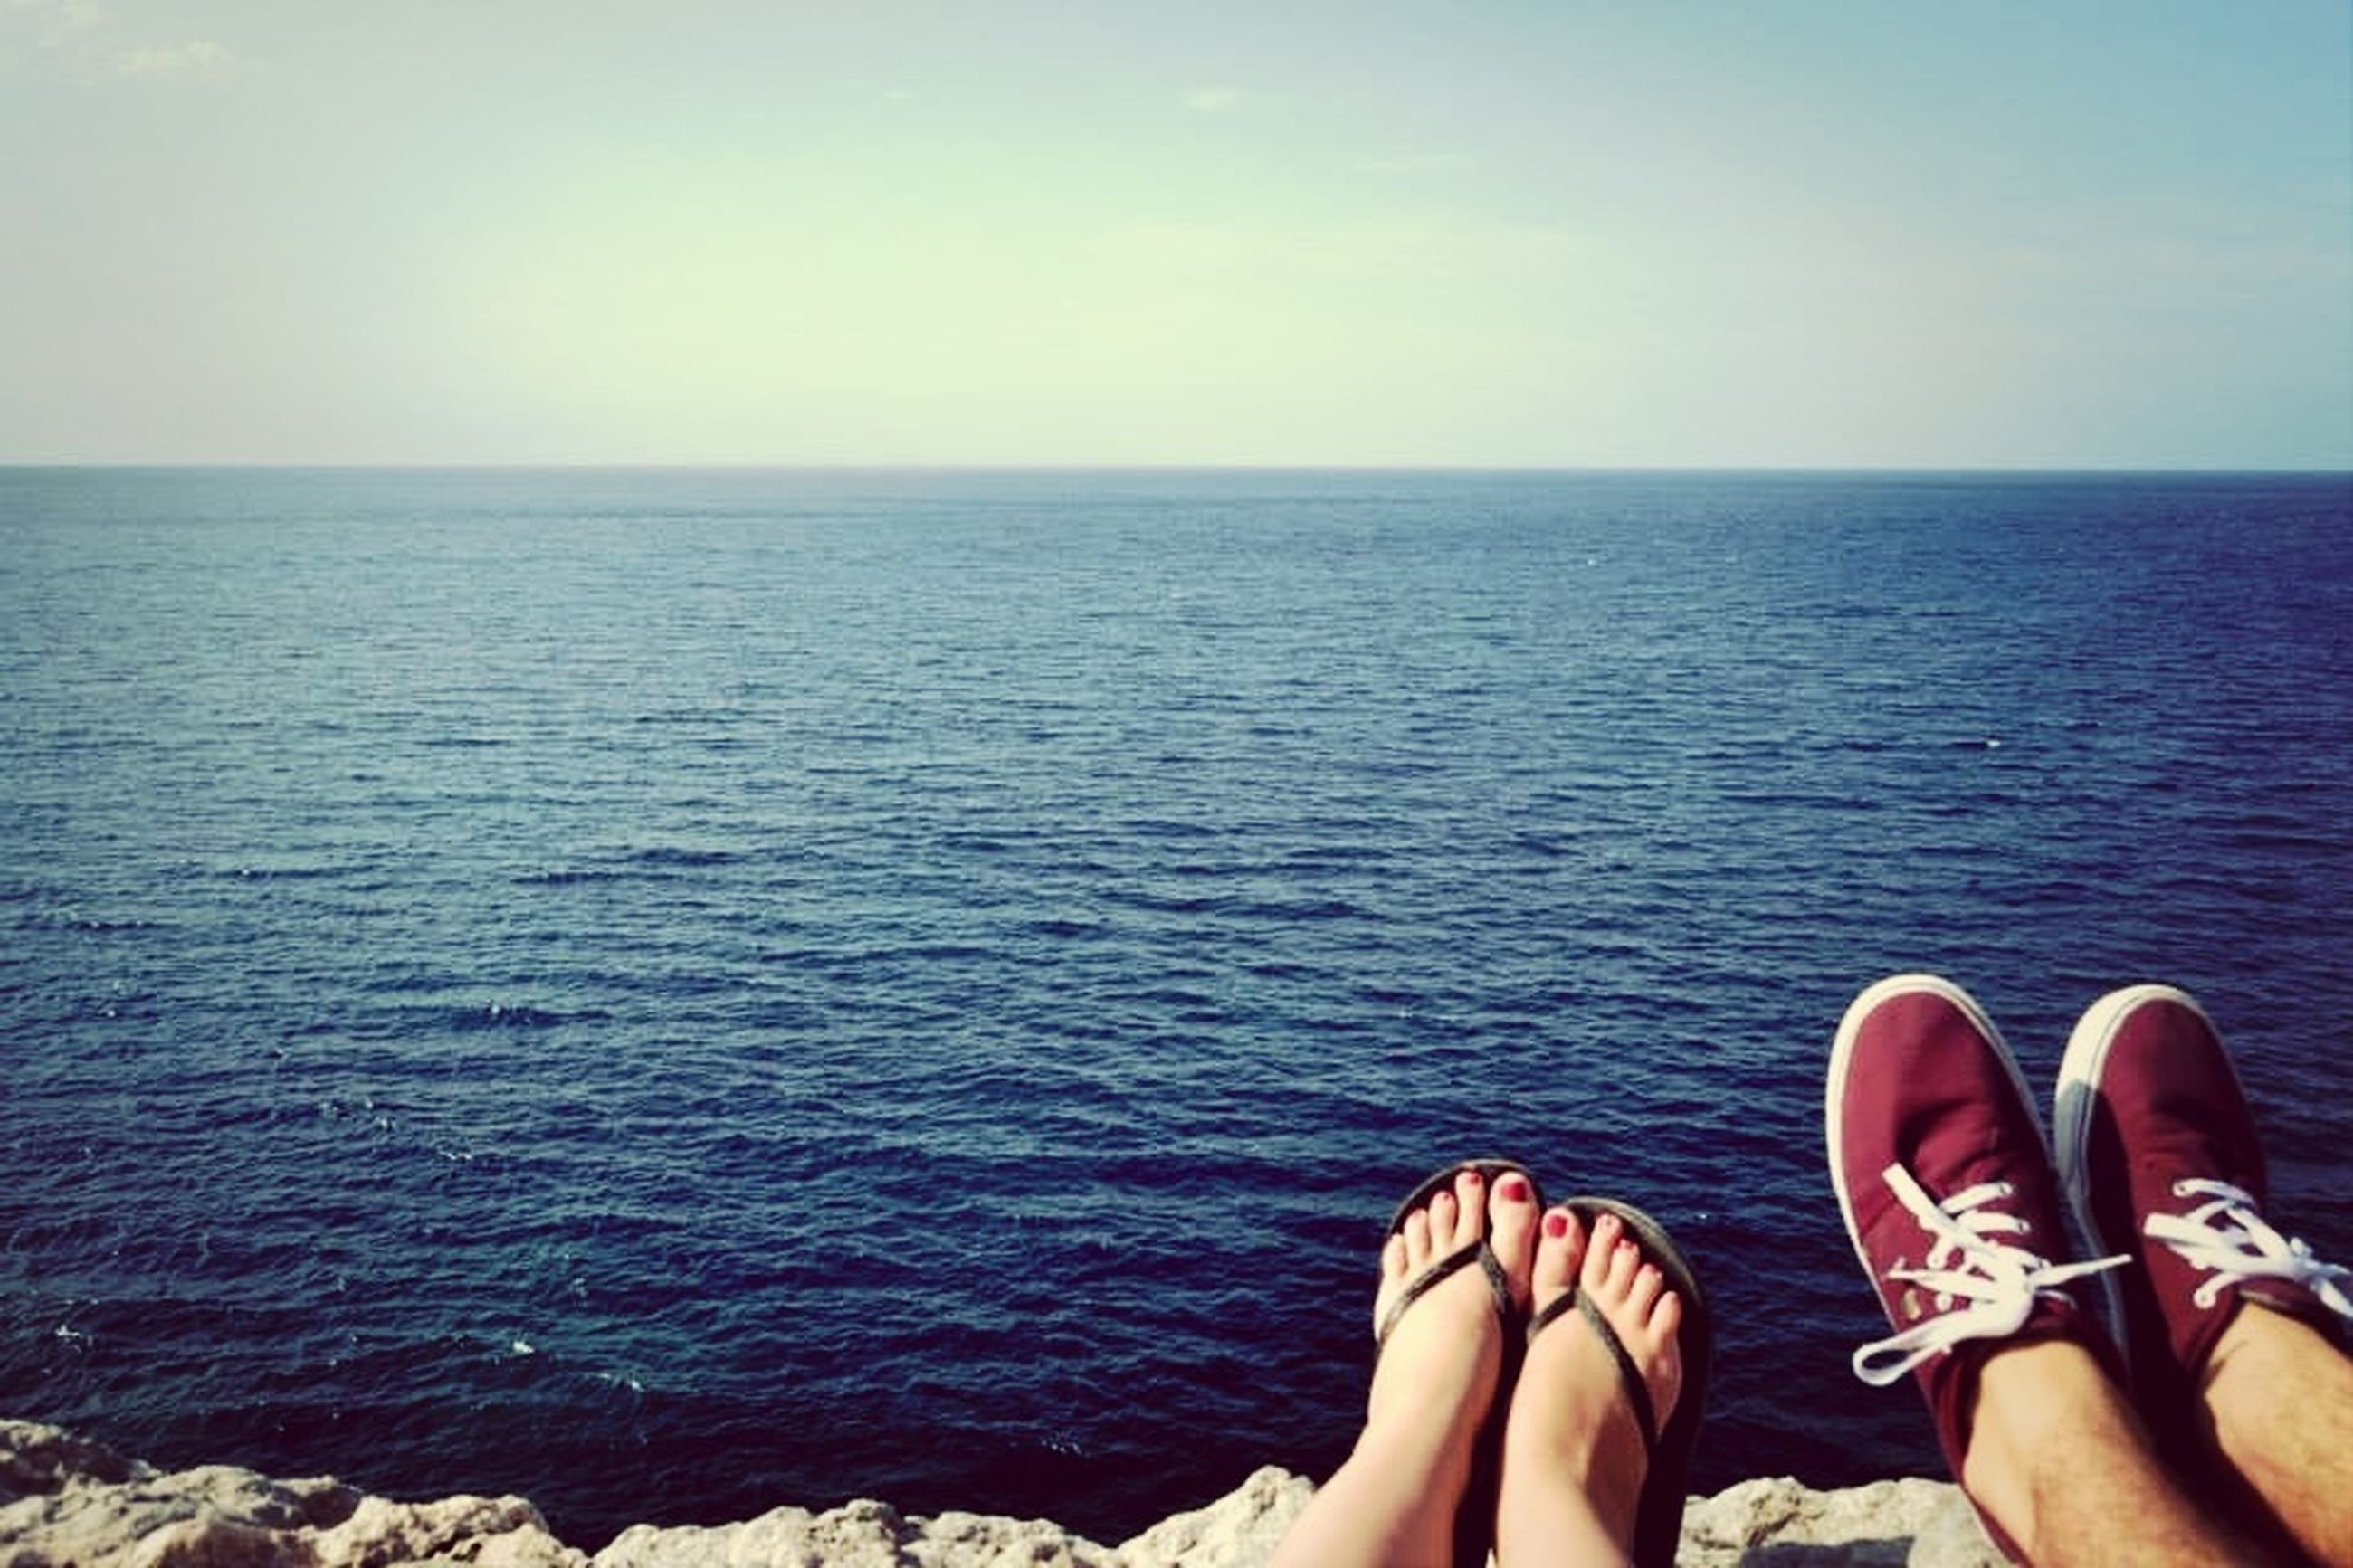 water, sea, horizon over water, lifestyles, leisure activity, low section, scenics, tranquil scene, part of, person, tranquility, sky, personal perspective, beauty in nature, rippled, nature